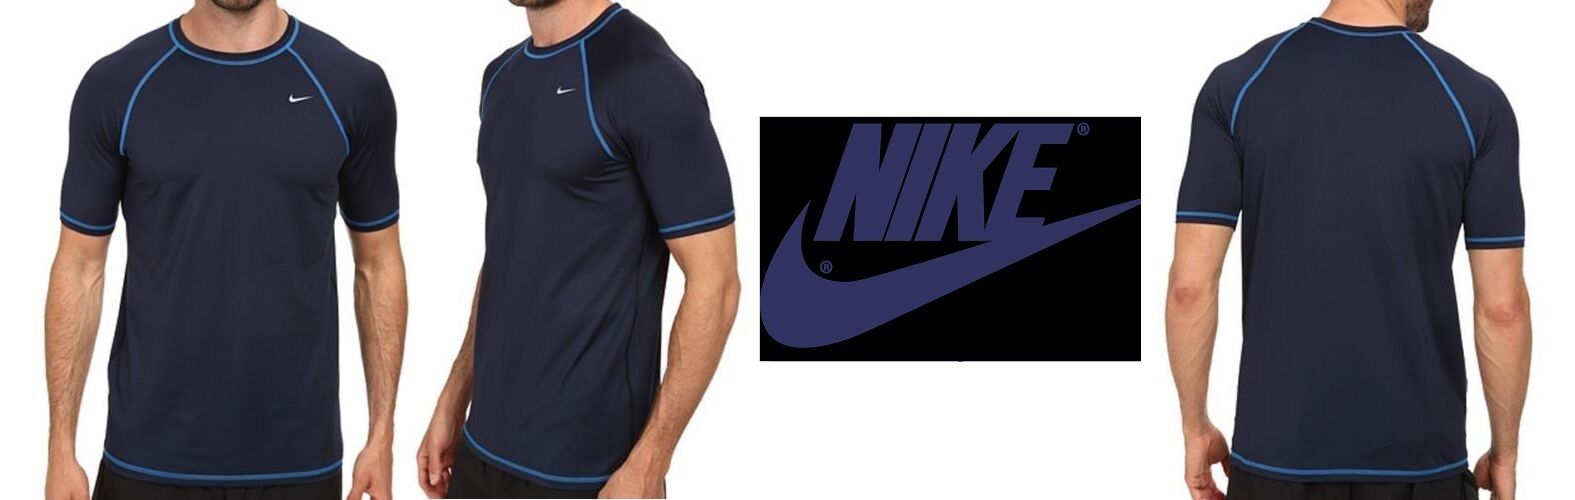 NIKE Men's XL HYDRO SHORT SLEEVE TOP Navy blueee Obsidian UPF 40+ Sport Shirt, NWT